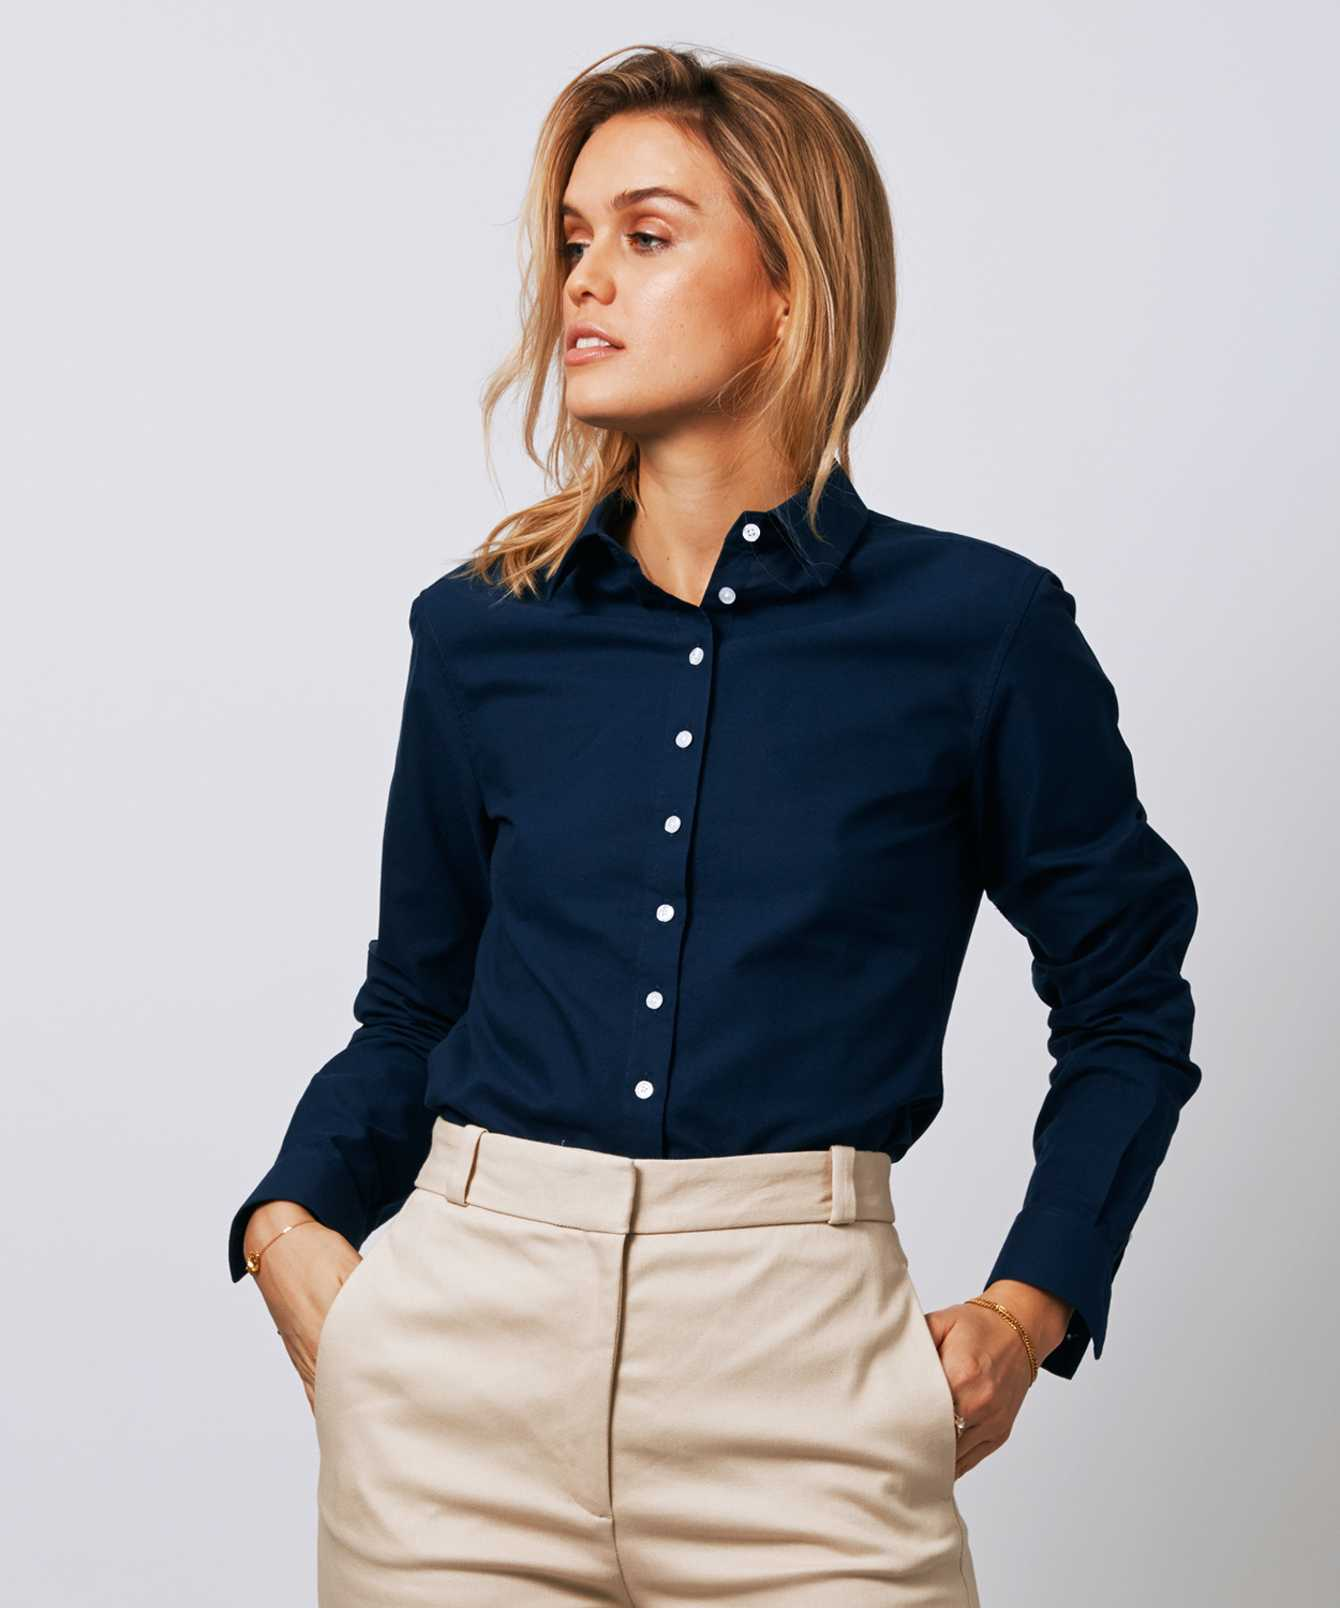 Shirt Tilde Hampton Oxford Navy The Shirt Factory